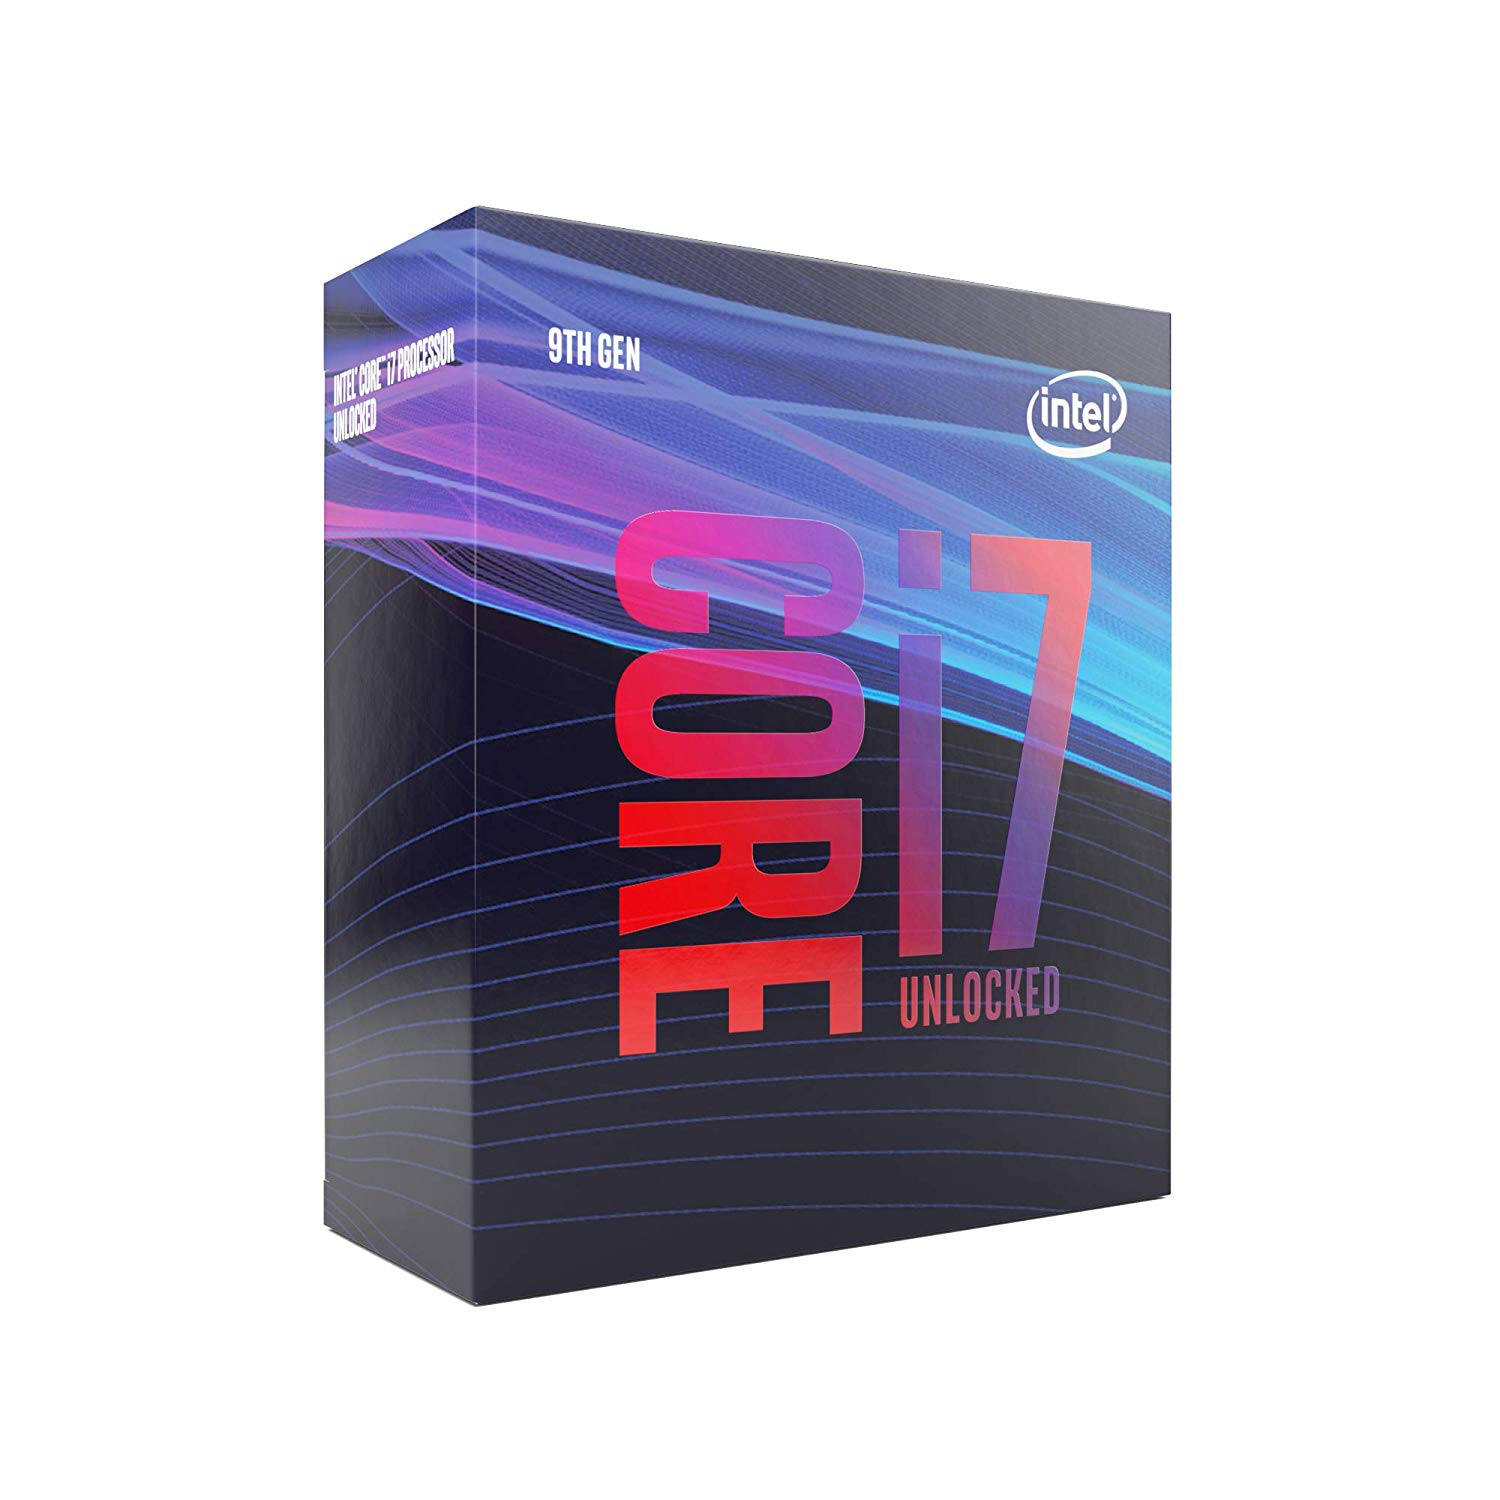 1 CPU - Intel Core i7-9700K Desktop Processor - Best $1500 PC Build 2019